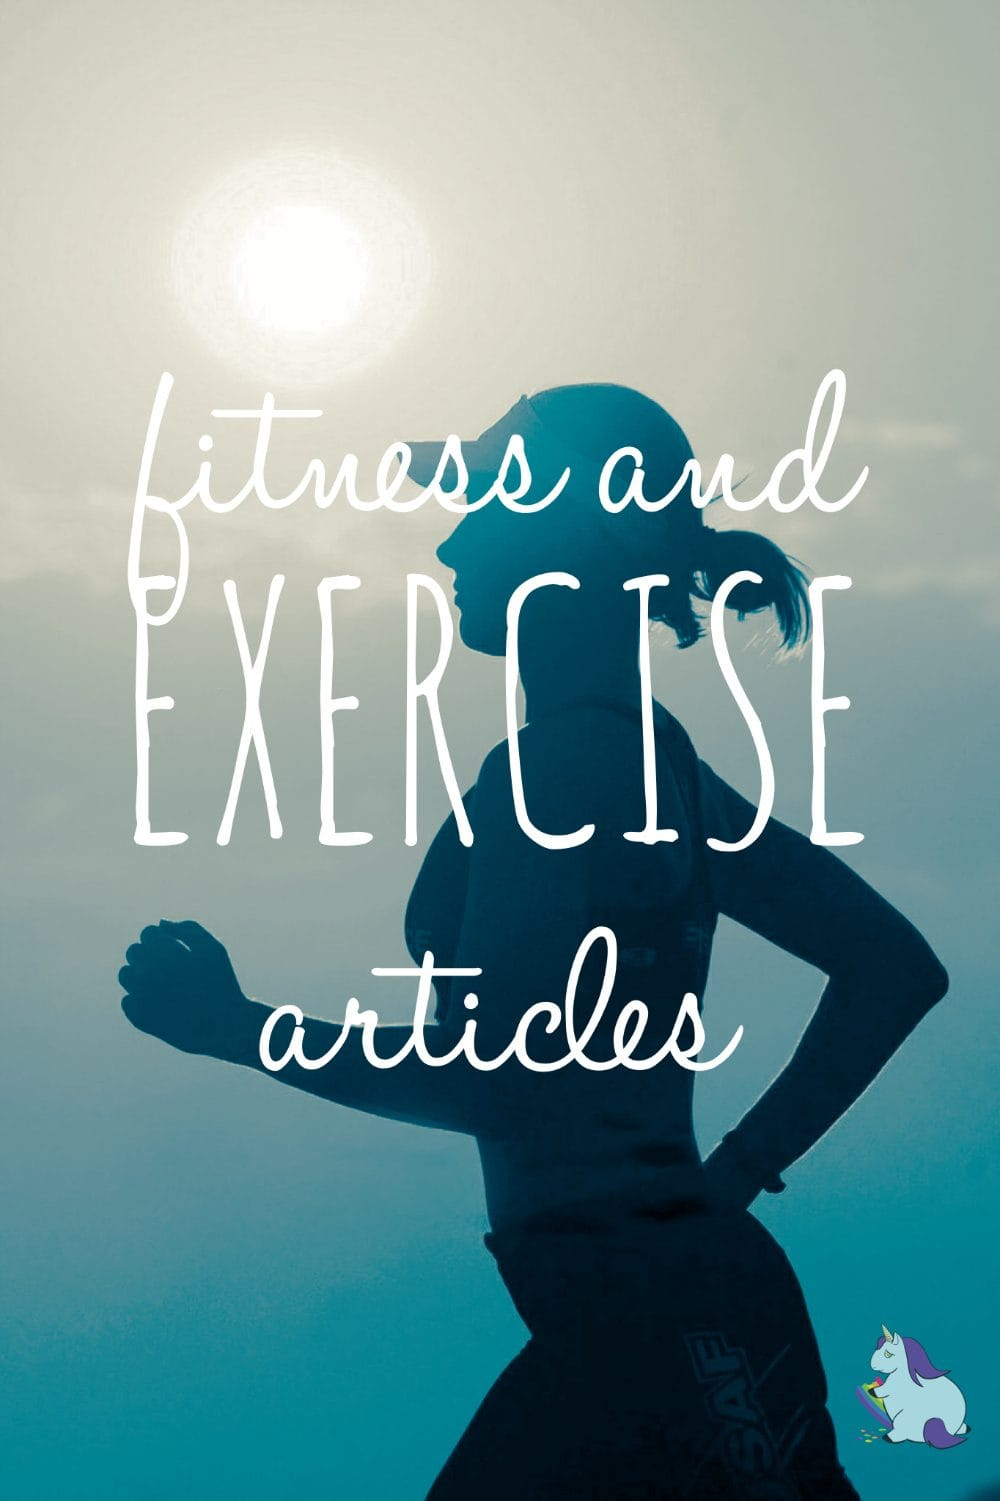 Articles About Physical Fitness and Exercise